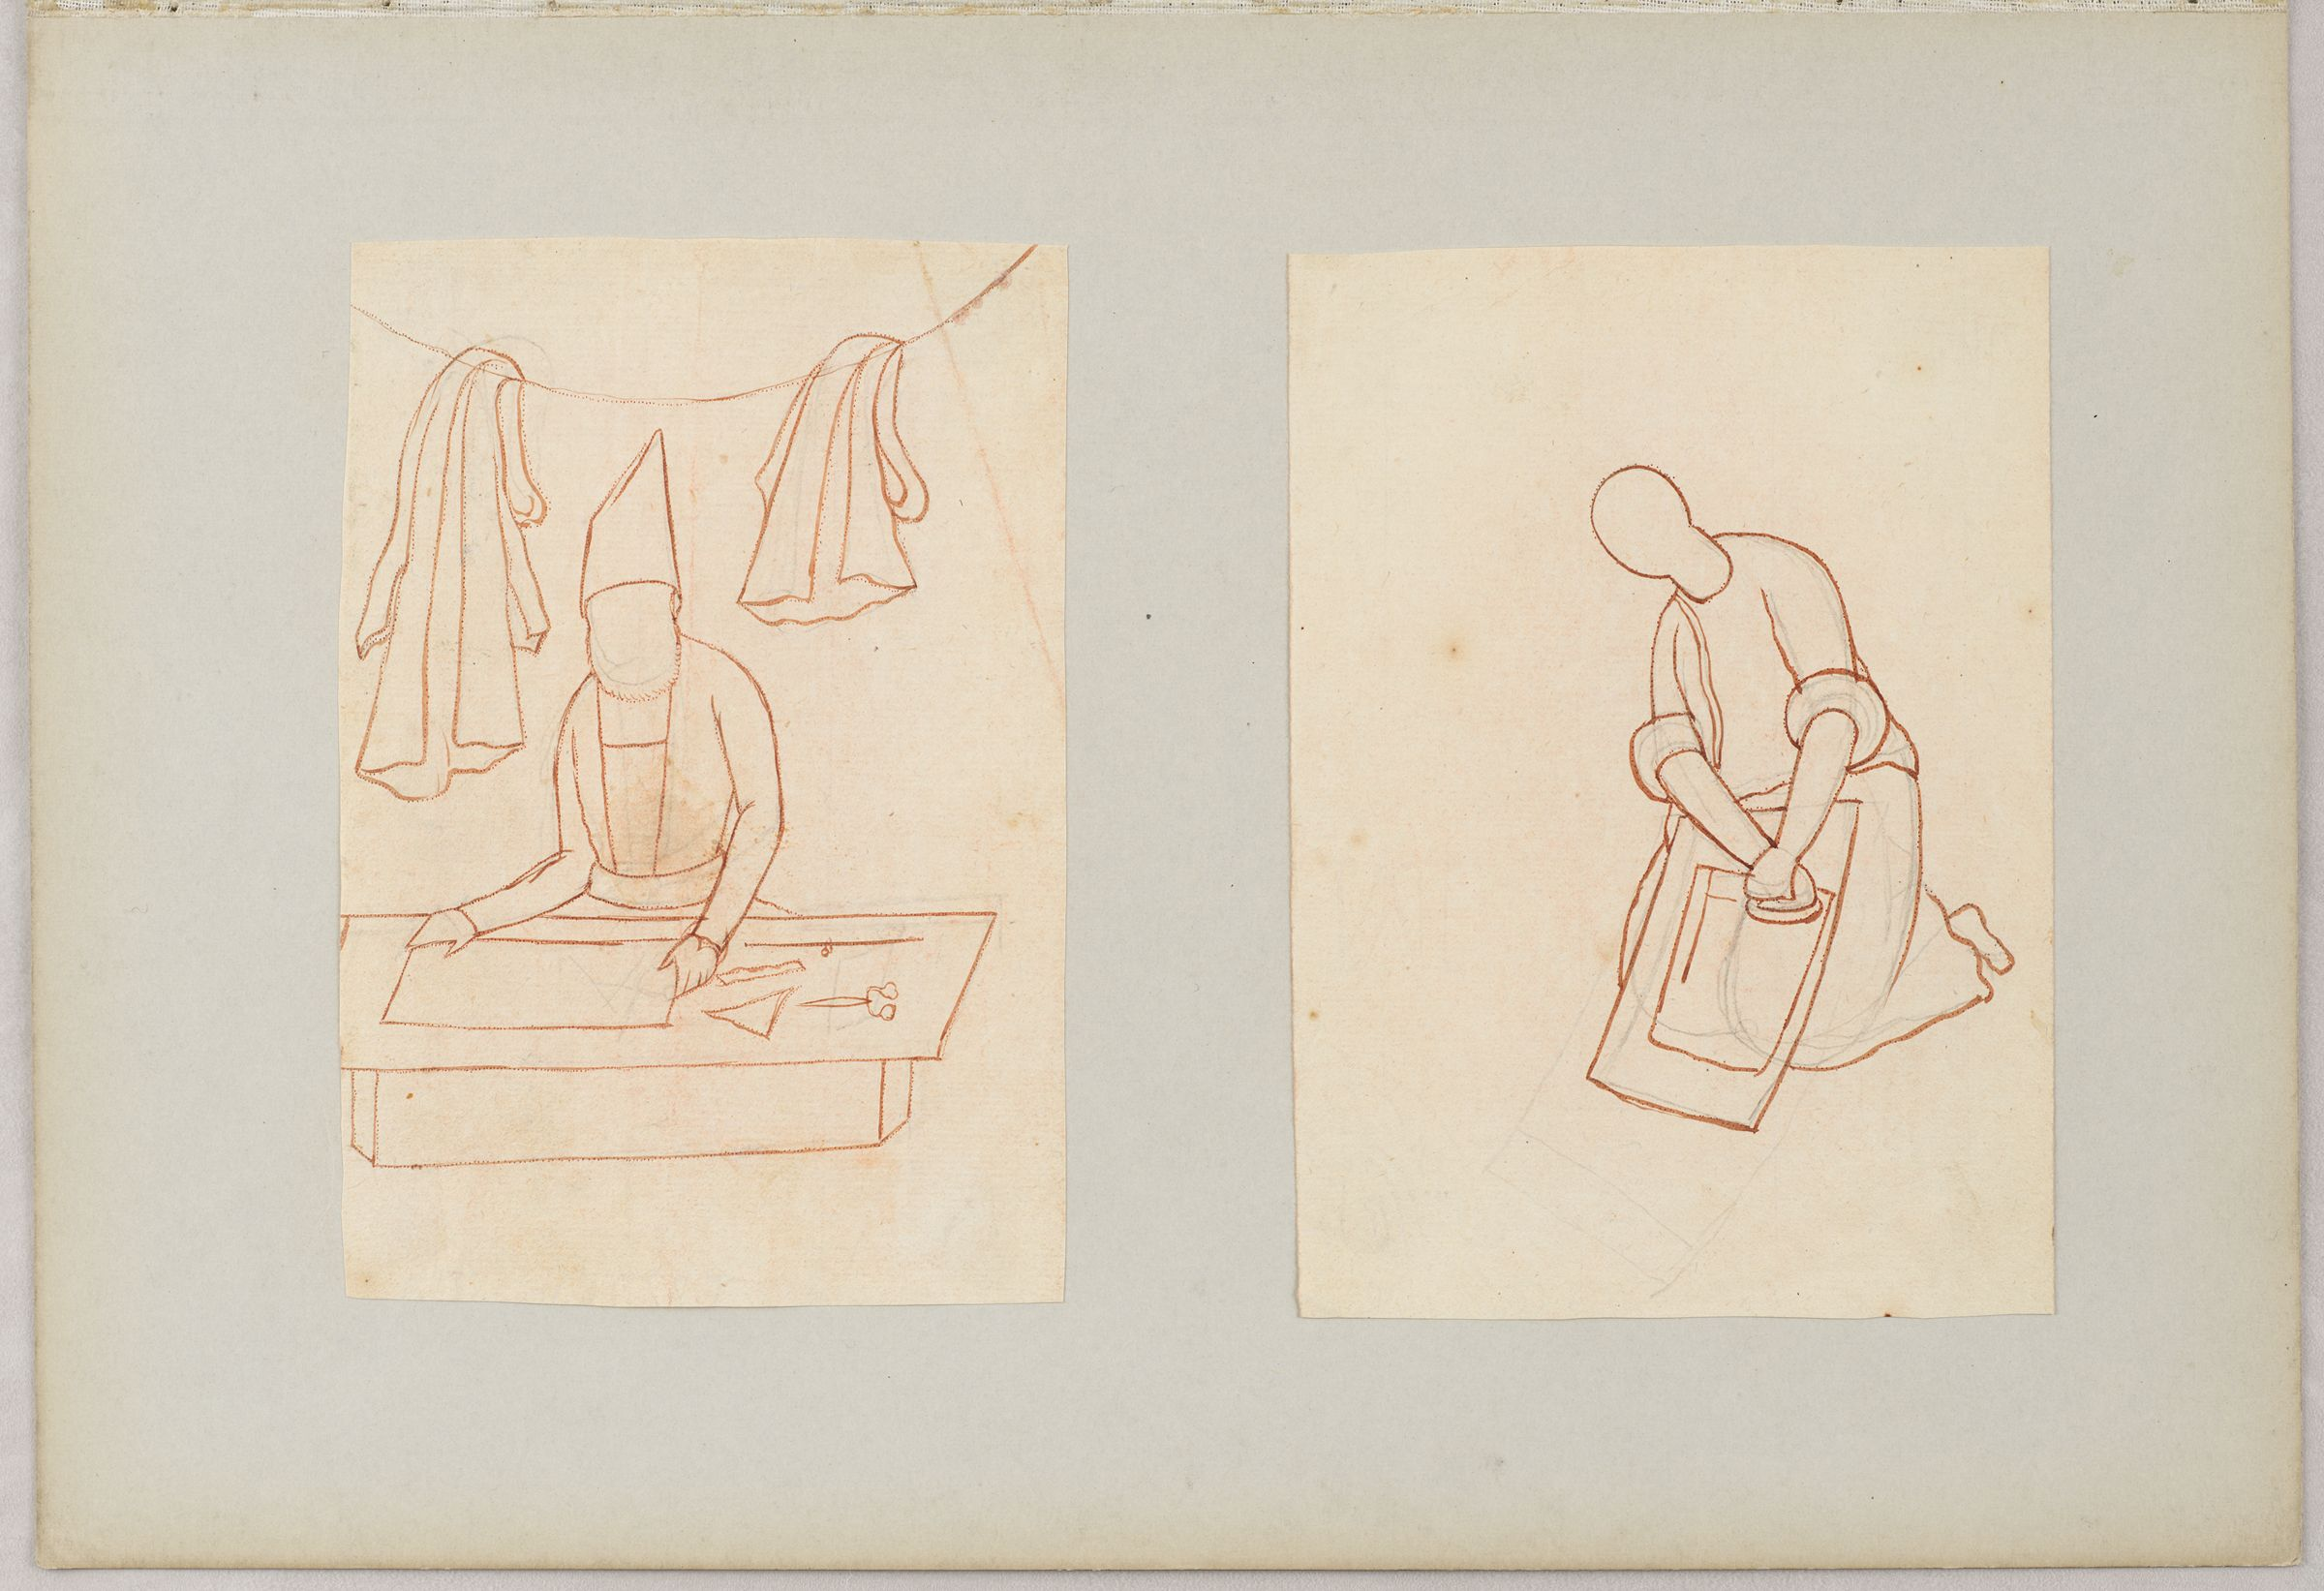 Folio 15 From An Album Of Drawings And Paintings: Two Drawings Of Workmen: Tailor And Man With Washboard (Recto); Blank Page (Verso)